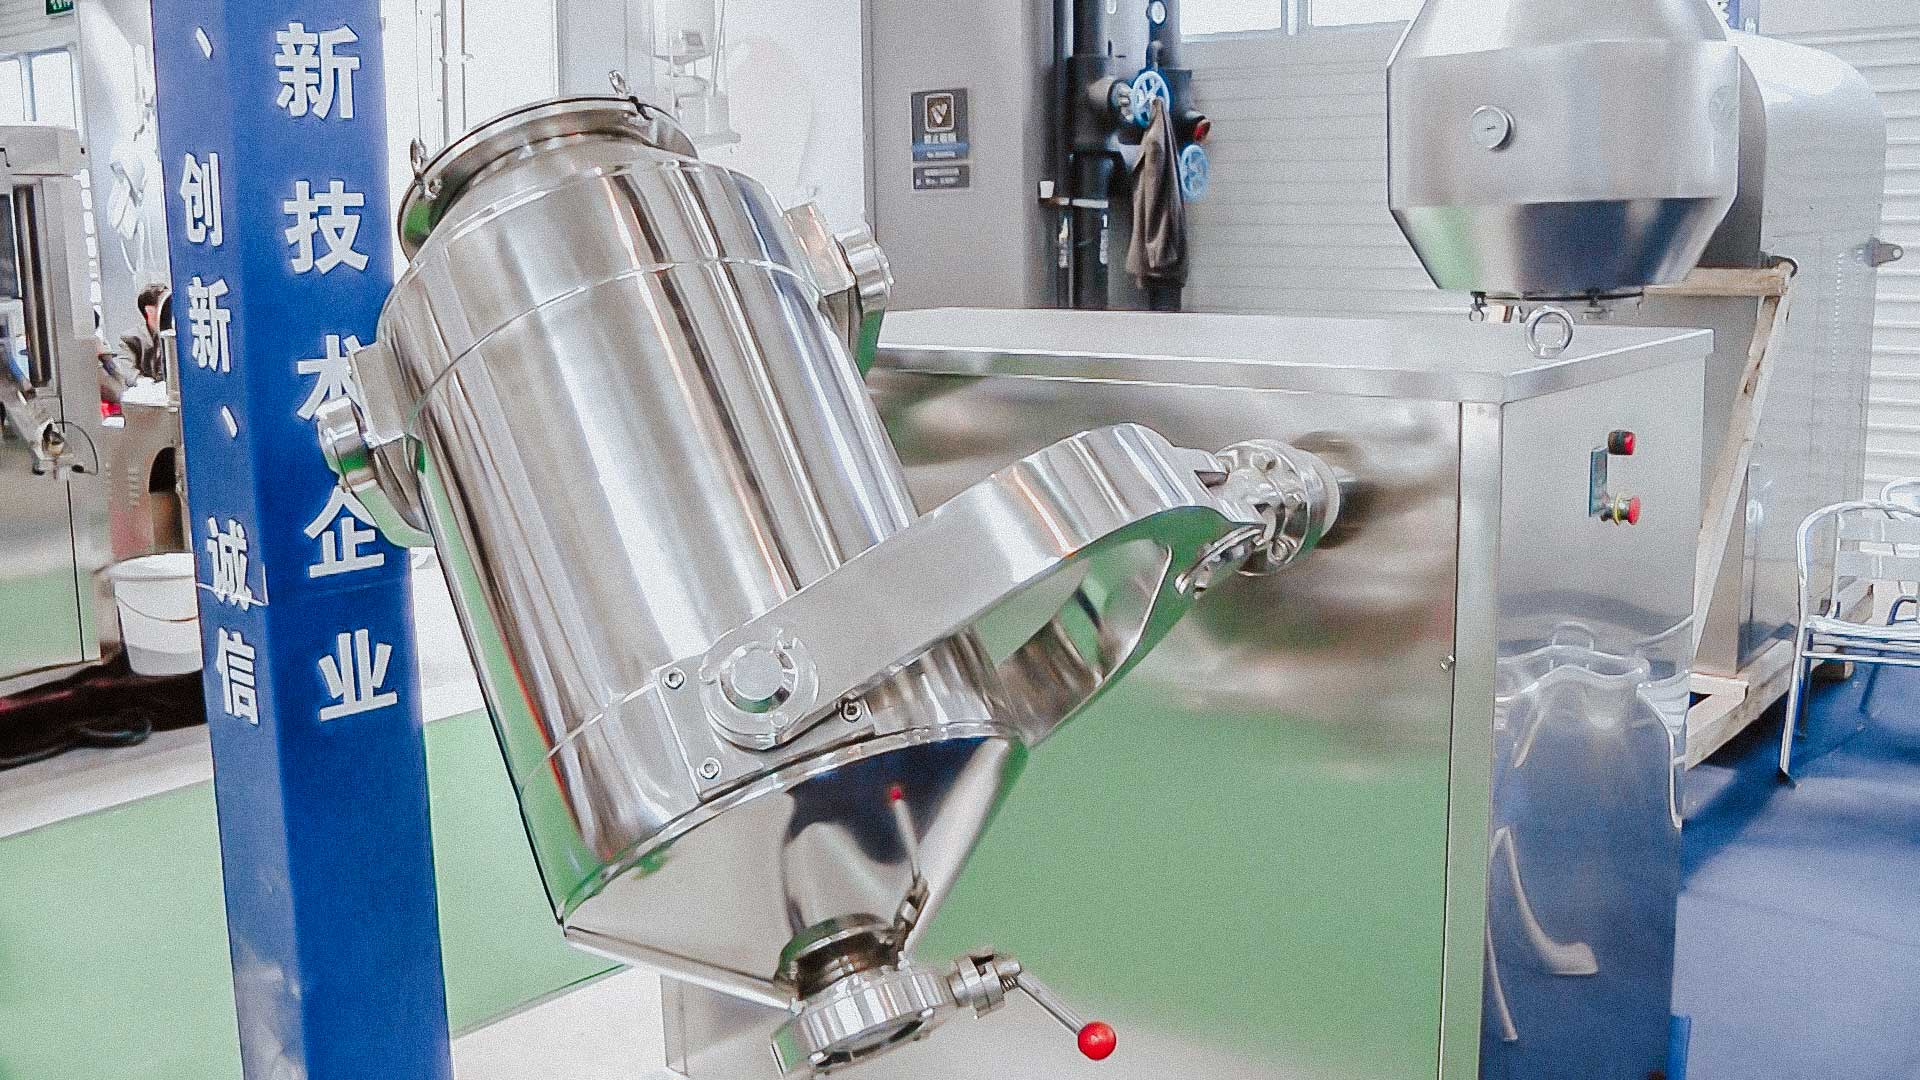 Mixer the drunk barrel for powders mixing in the pharmaceutical drug manufacturing